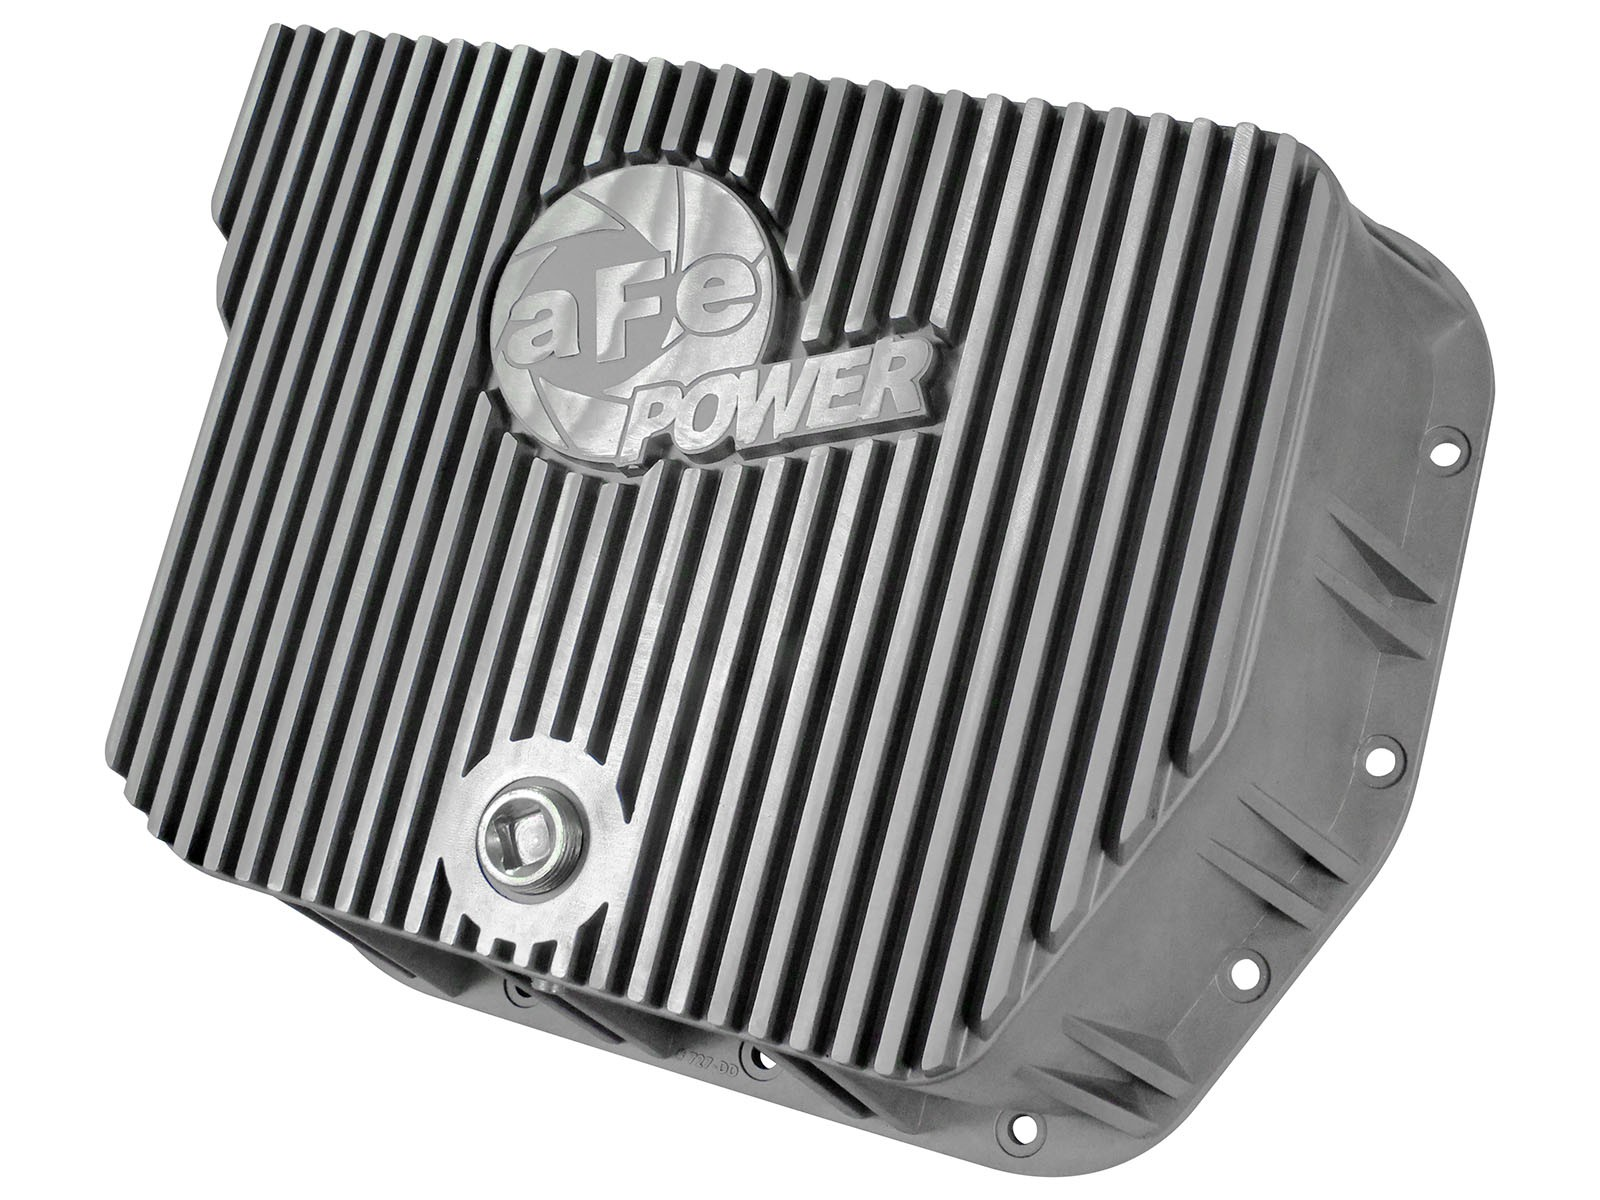 aFe POWER 46-70050 Transmission Pan, Machined Fins